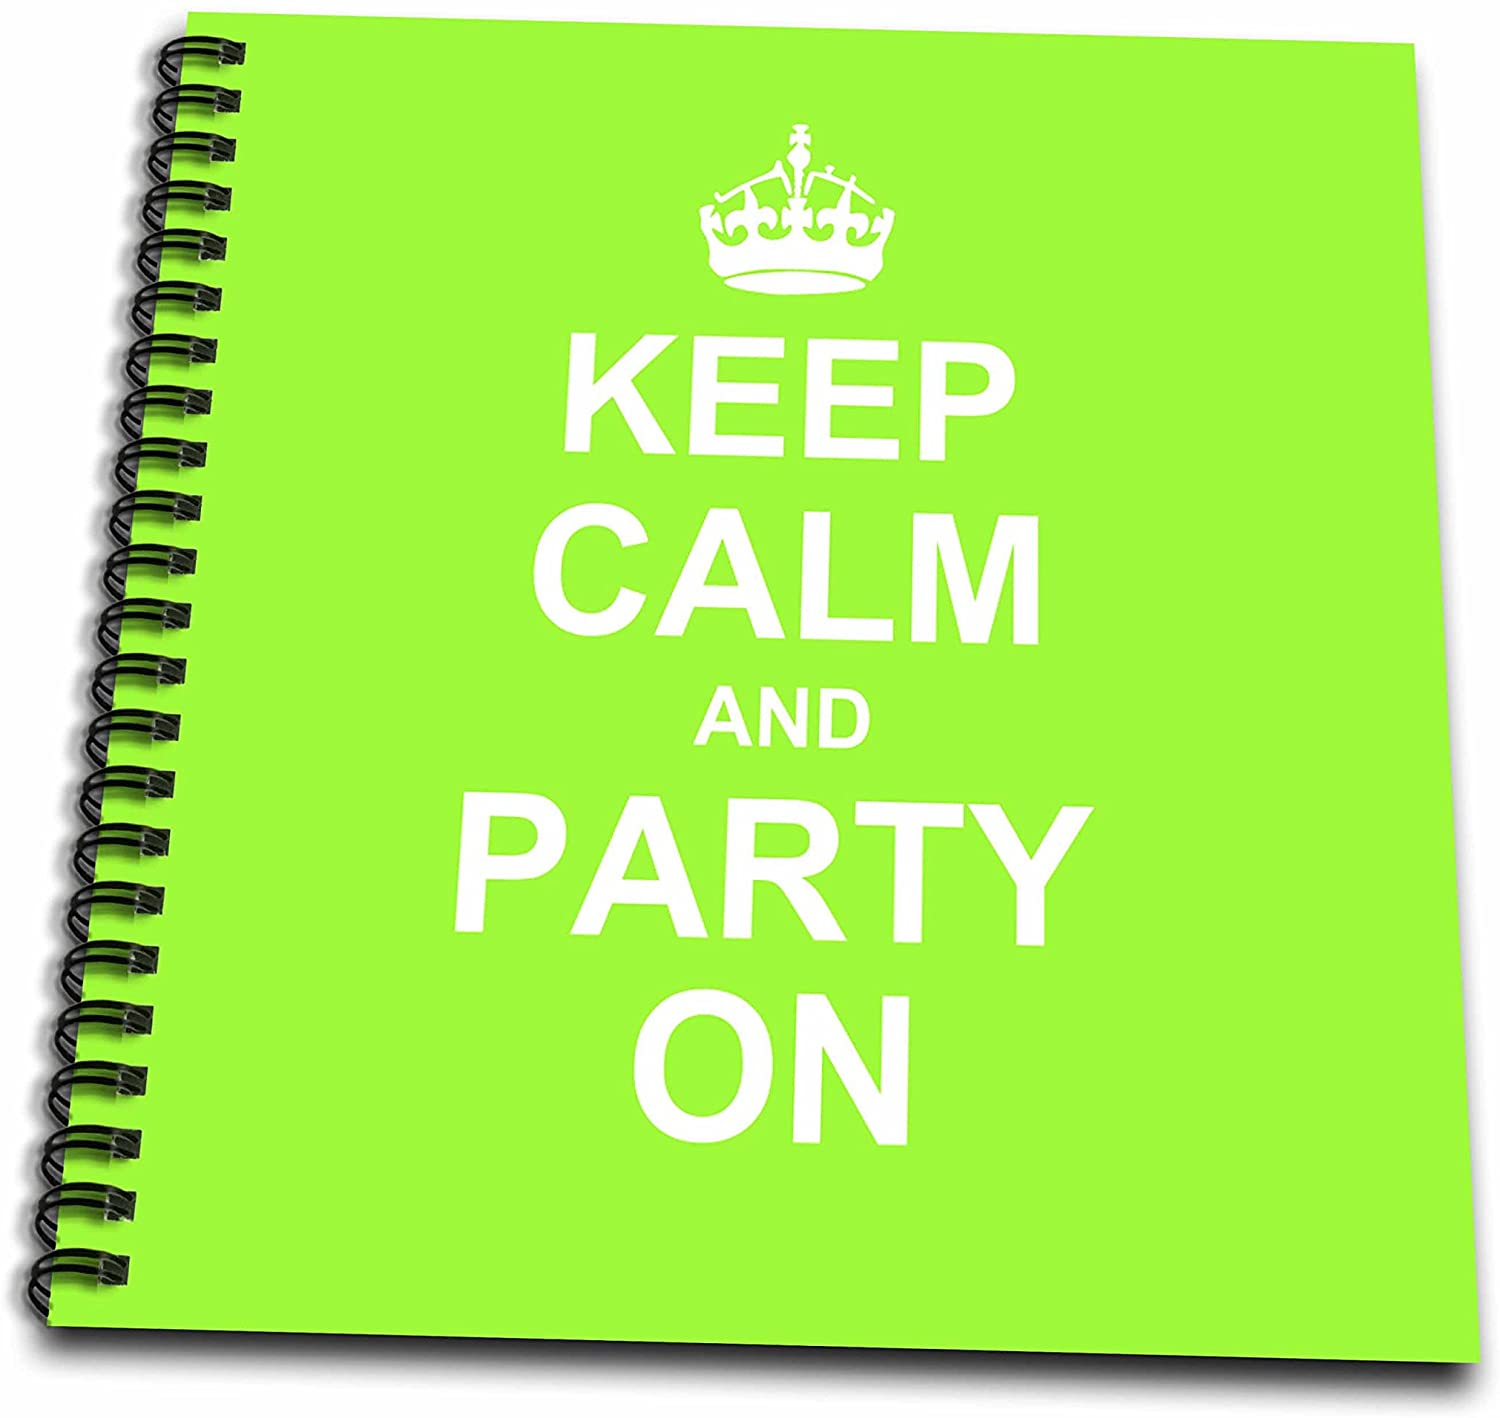 3dRose db_157749_1 Keep Calm and Party on Neon Green Carry on Partying Fun Party Animal Gift Humorous Drawing Book, 8 by 8-Inch